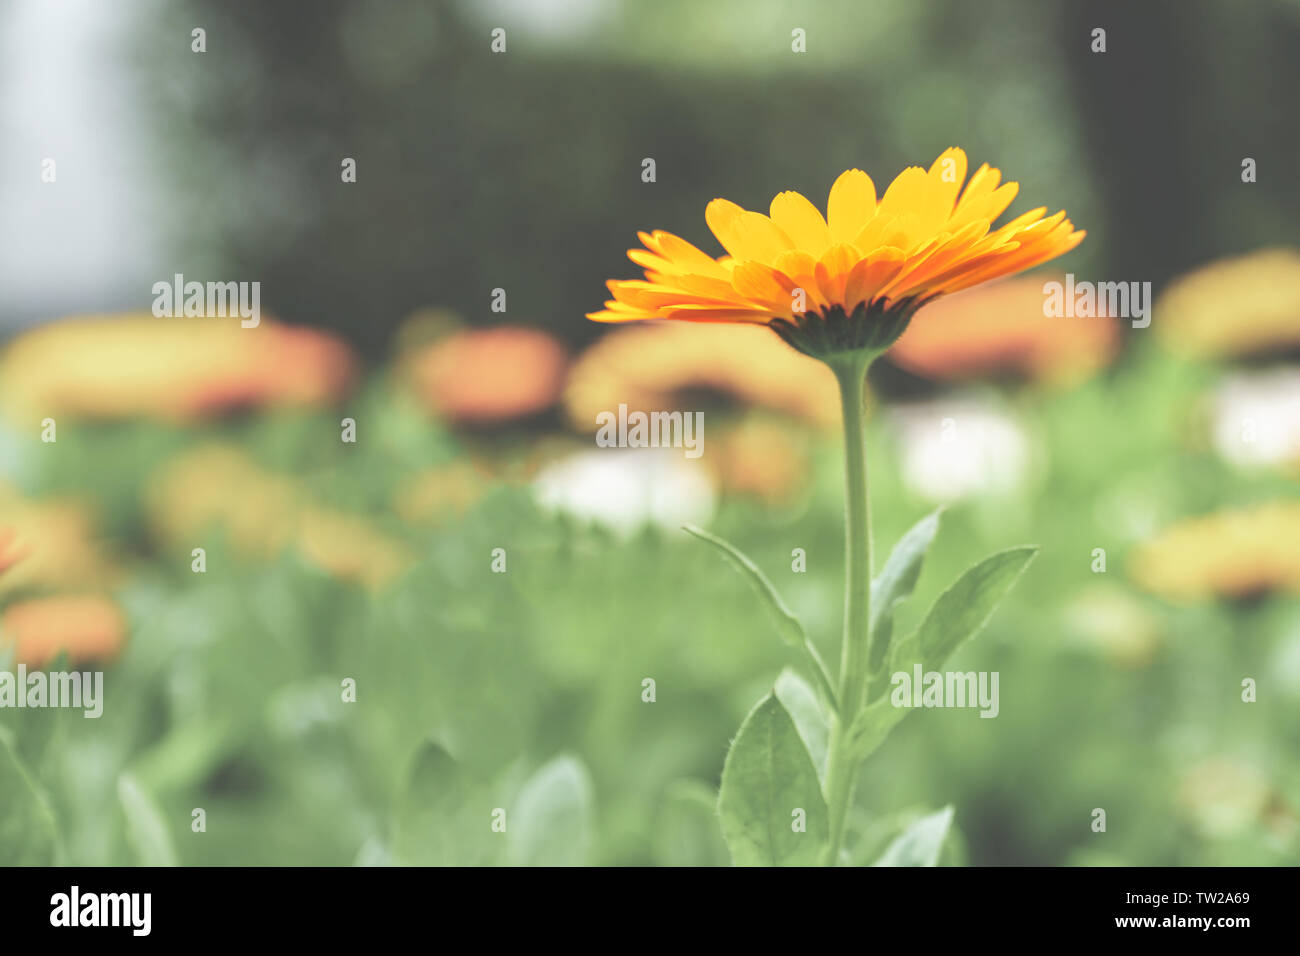 One single flower with vibrant orange petals stands out from a faded background of others - eye level side view, close-up, selective focus, landscape Stock Photo